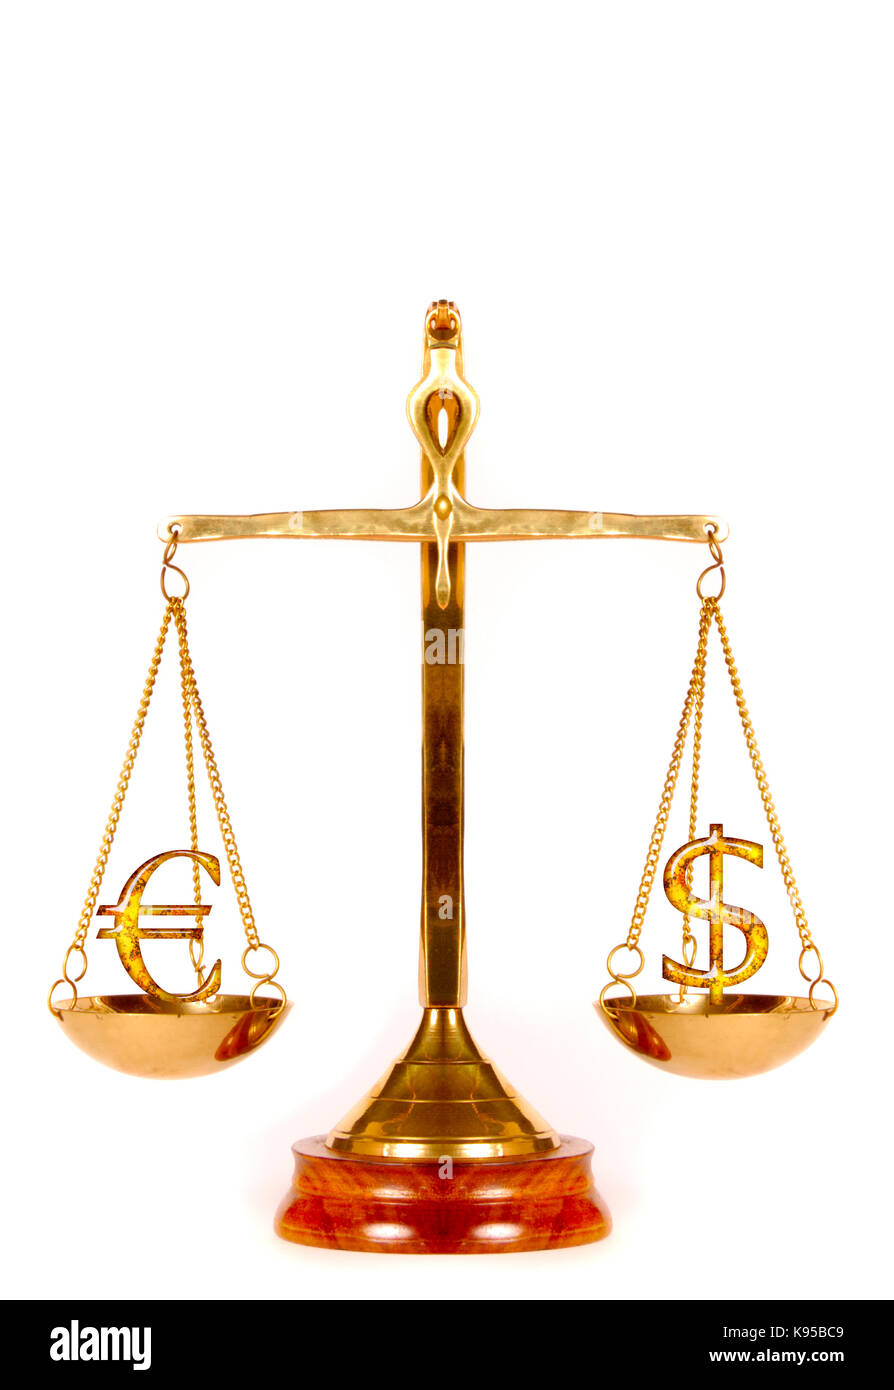 euro and dollar symbols on a weighing scale stock photo 160543945